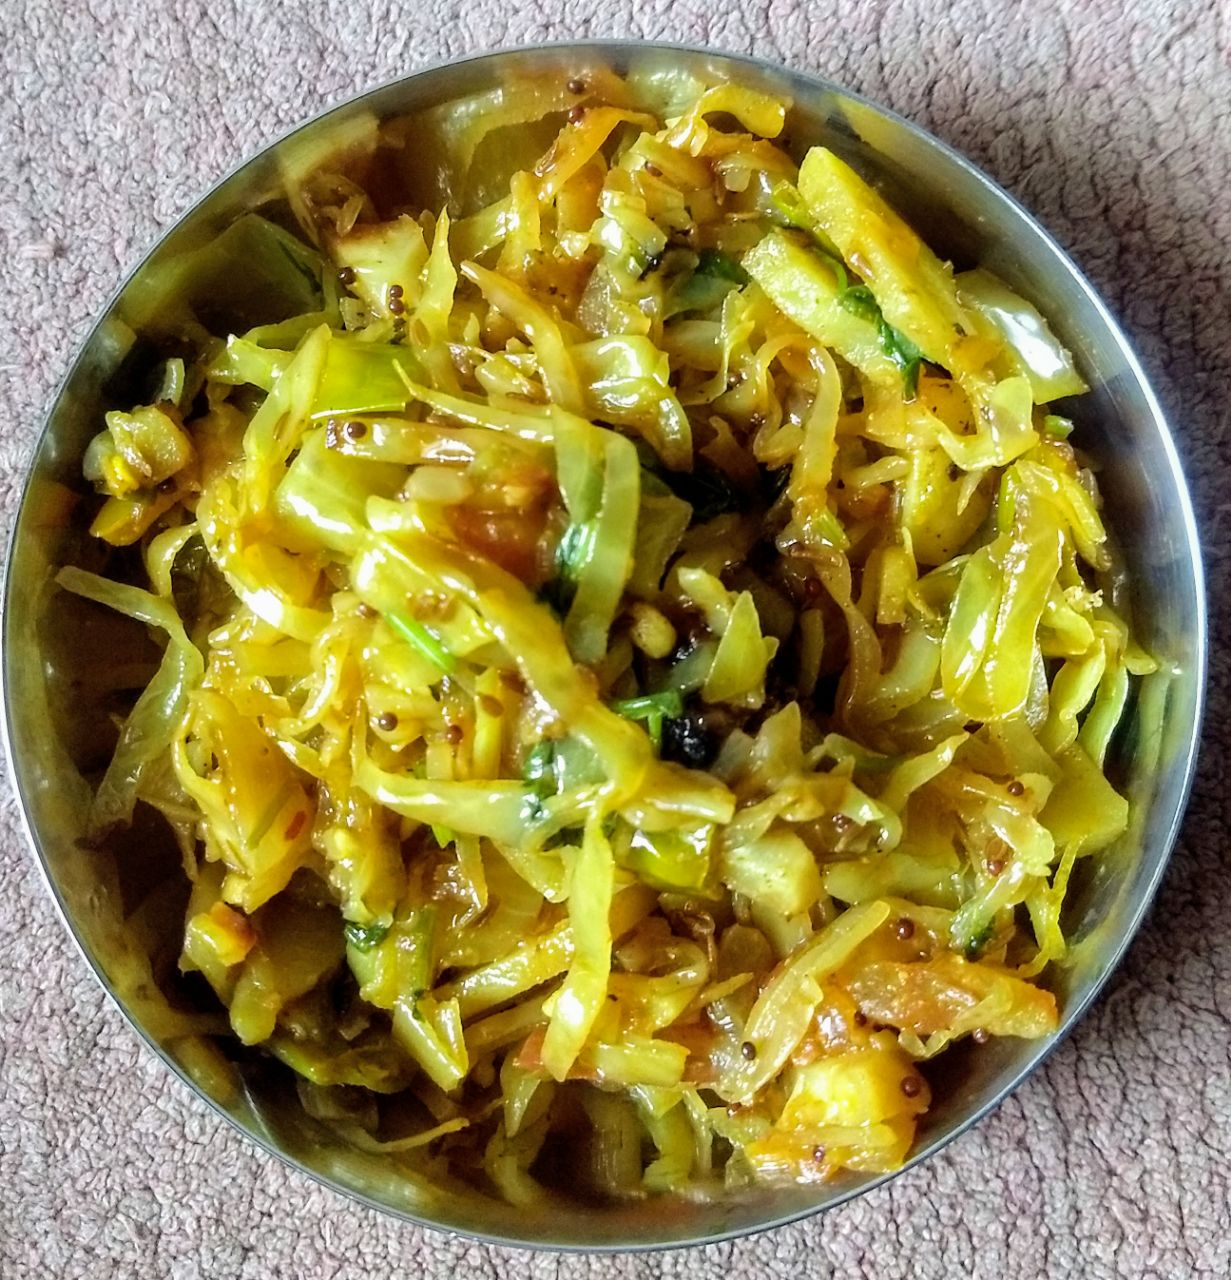 Delicious Cabbage-by-Rasoirecipes